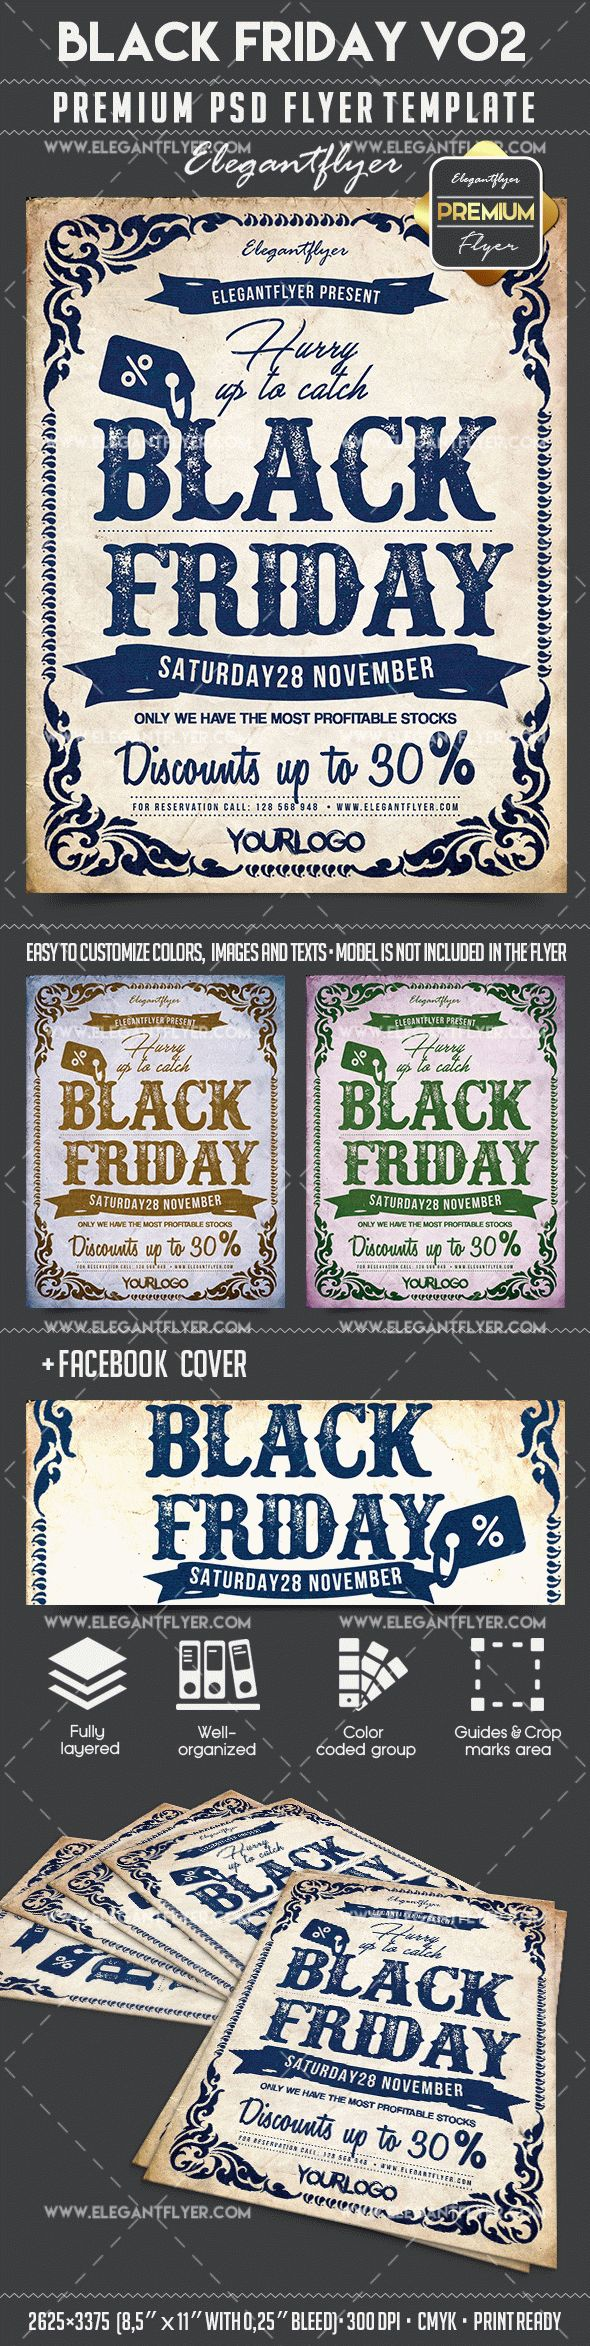 Black Friday V02 – Flyer PSD Template